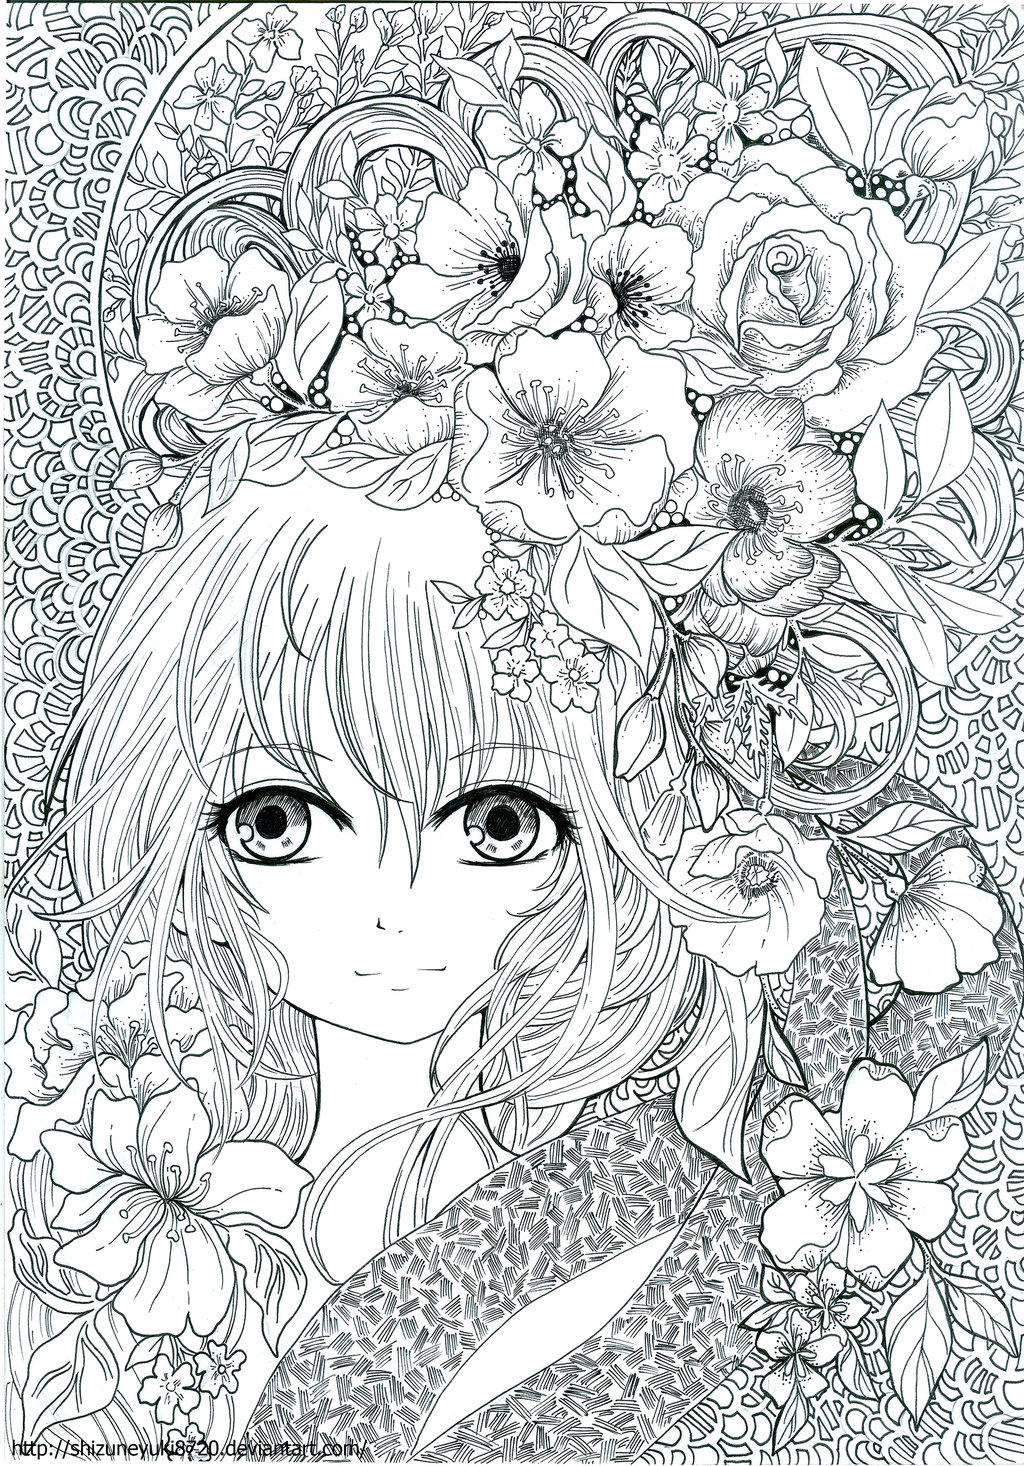 Anime Coloring Book | AdultcoloringbookZ